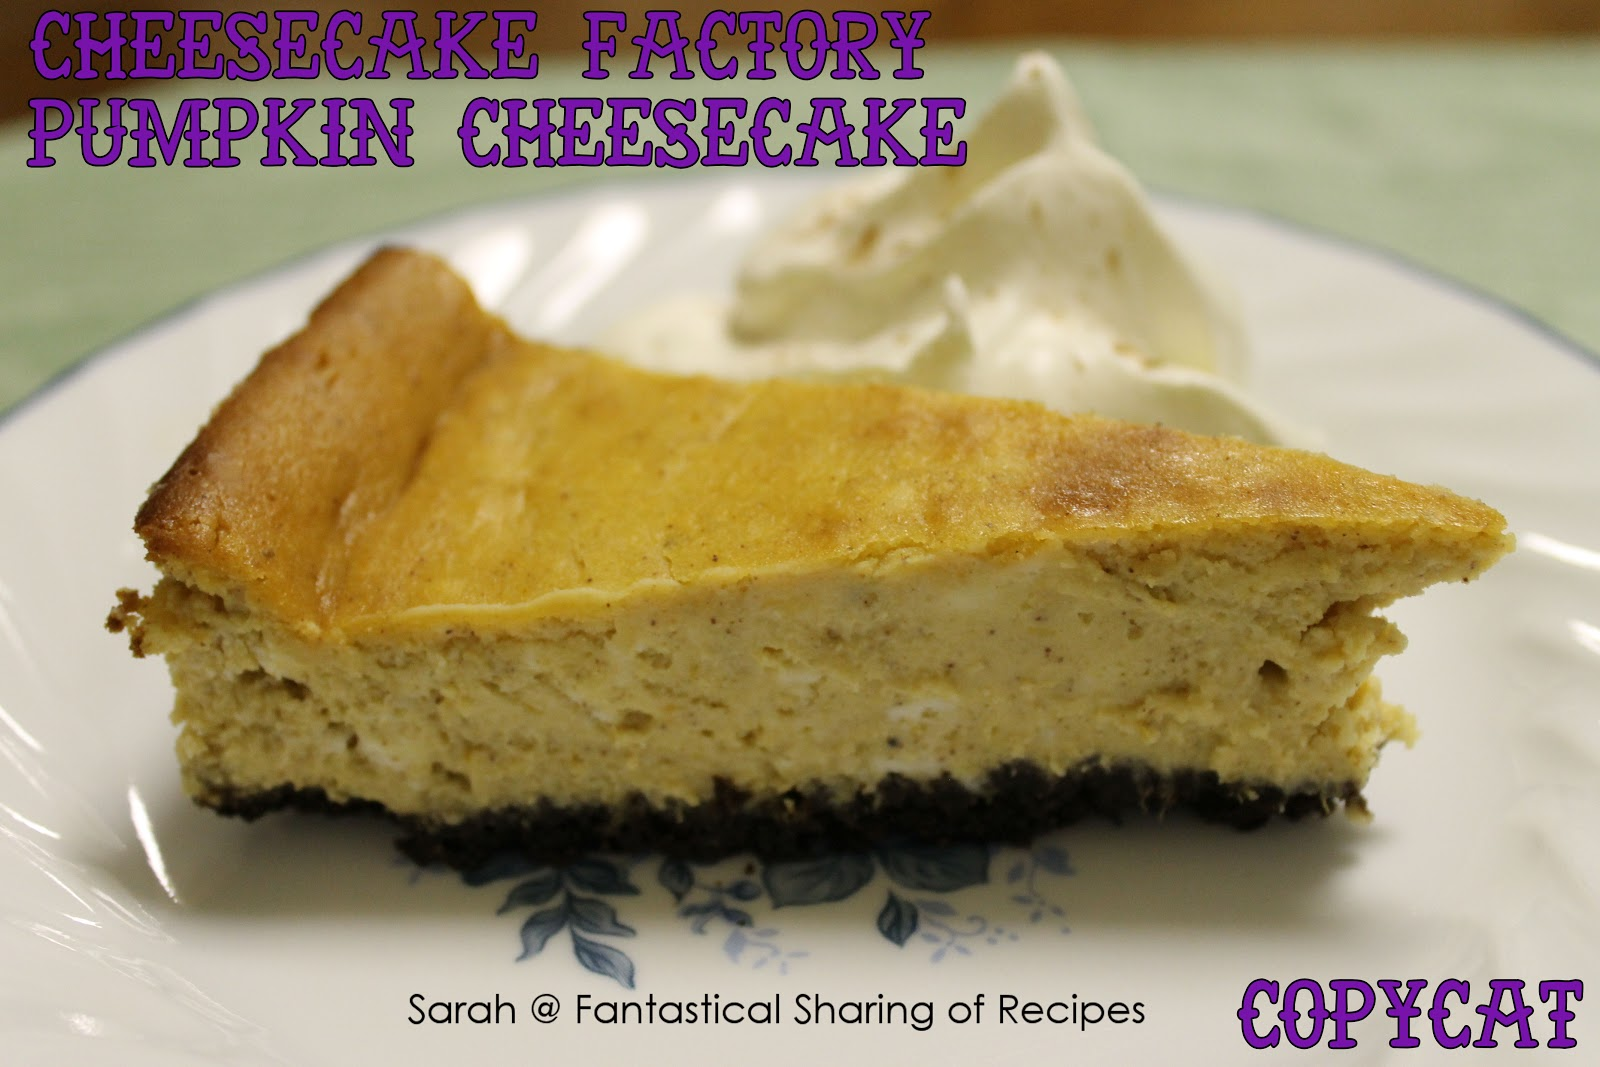 Fantastical Sharing Of Recipes Tasty Thursday 81 Pumpkin Week Cheesecake Factory Pumpkin Cheesecake